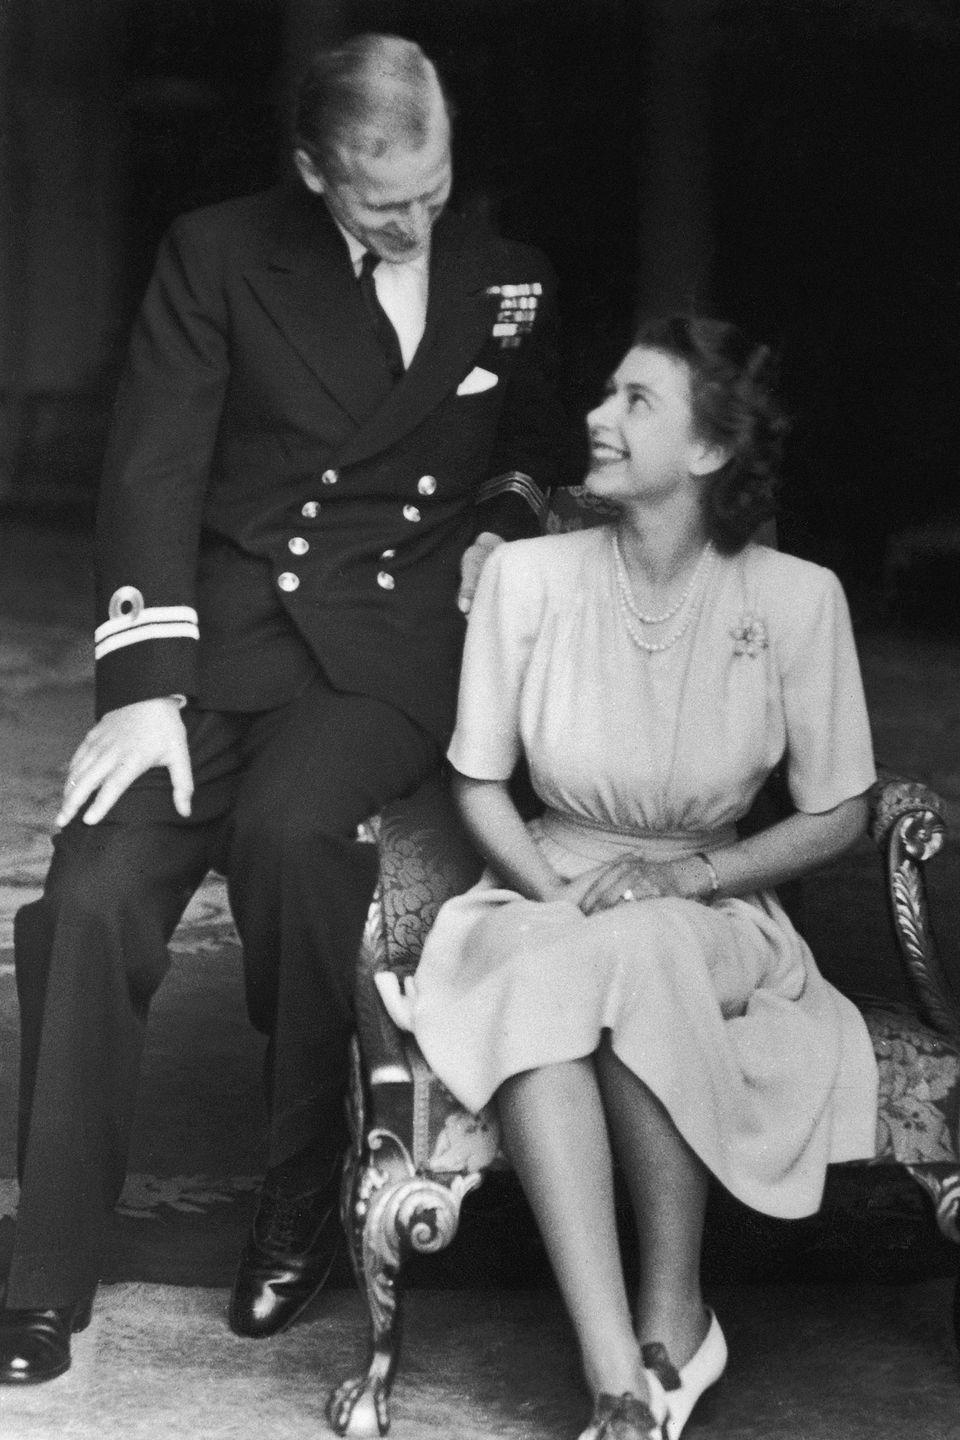 <p>Princess Elizabeth with her fiance, Philip, at Buckingham Palace after announcing their engagement in the summer of 1947. </p>